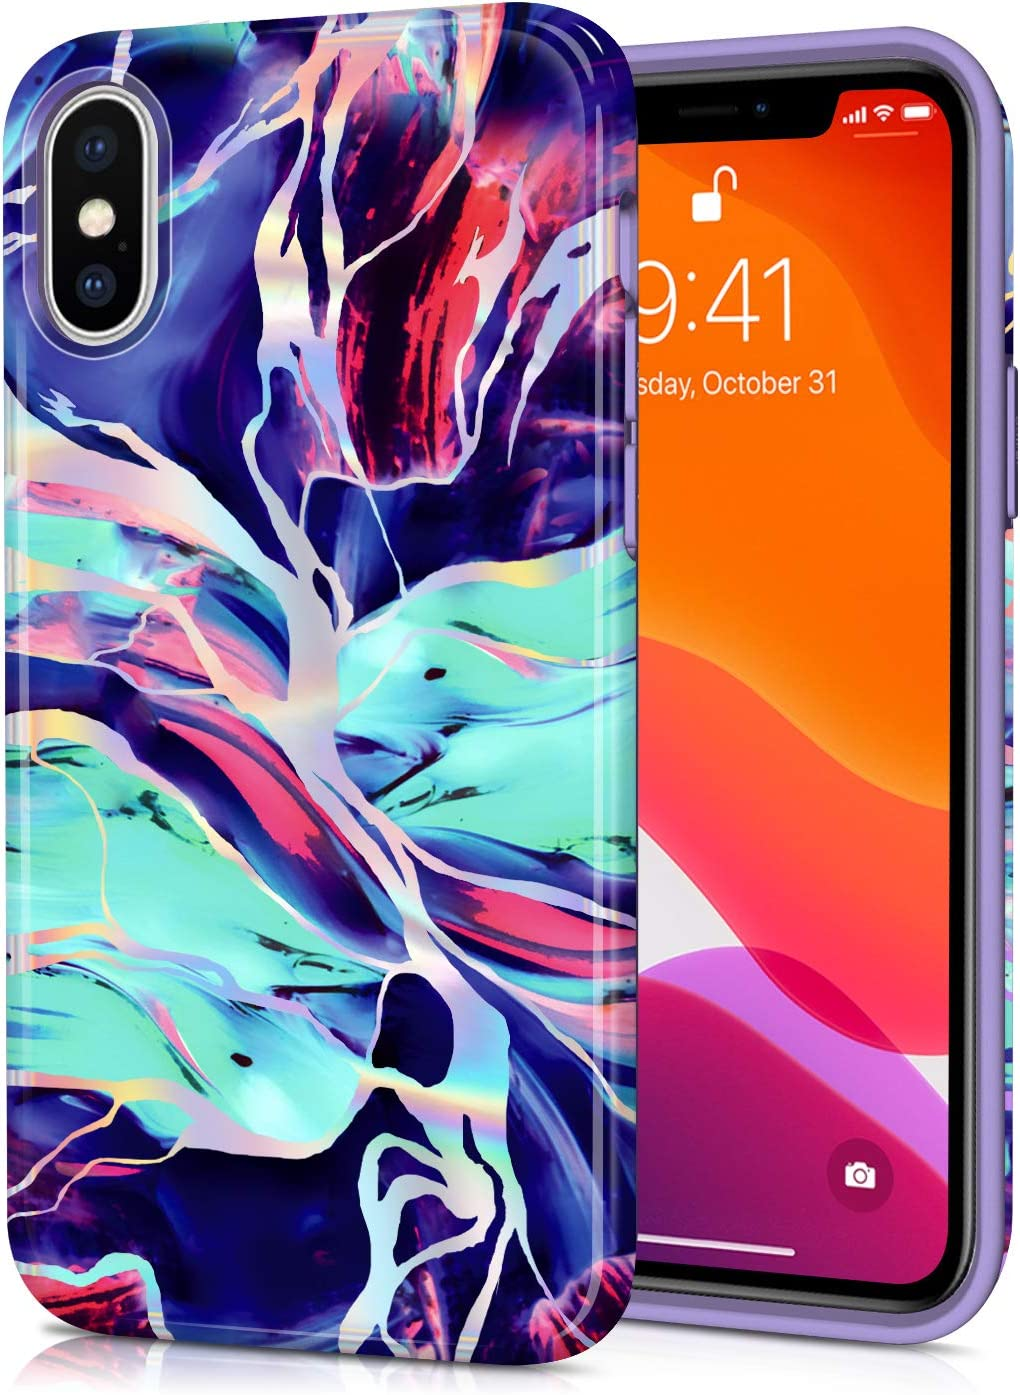 CAOUME iPhone X iPhone Xs Case - Holographic Purple Marble Design - Protective Cases for Apple Phone Camera and Screen - Compatible with iPhone X/XS(5.8 inch)